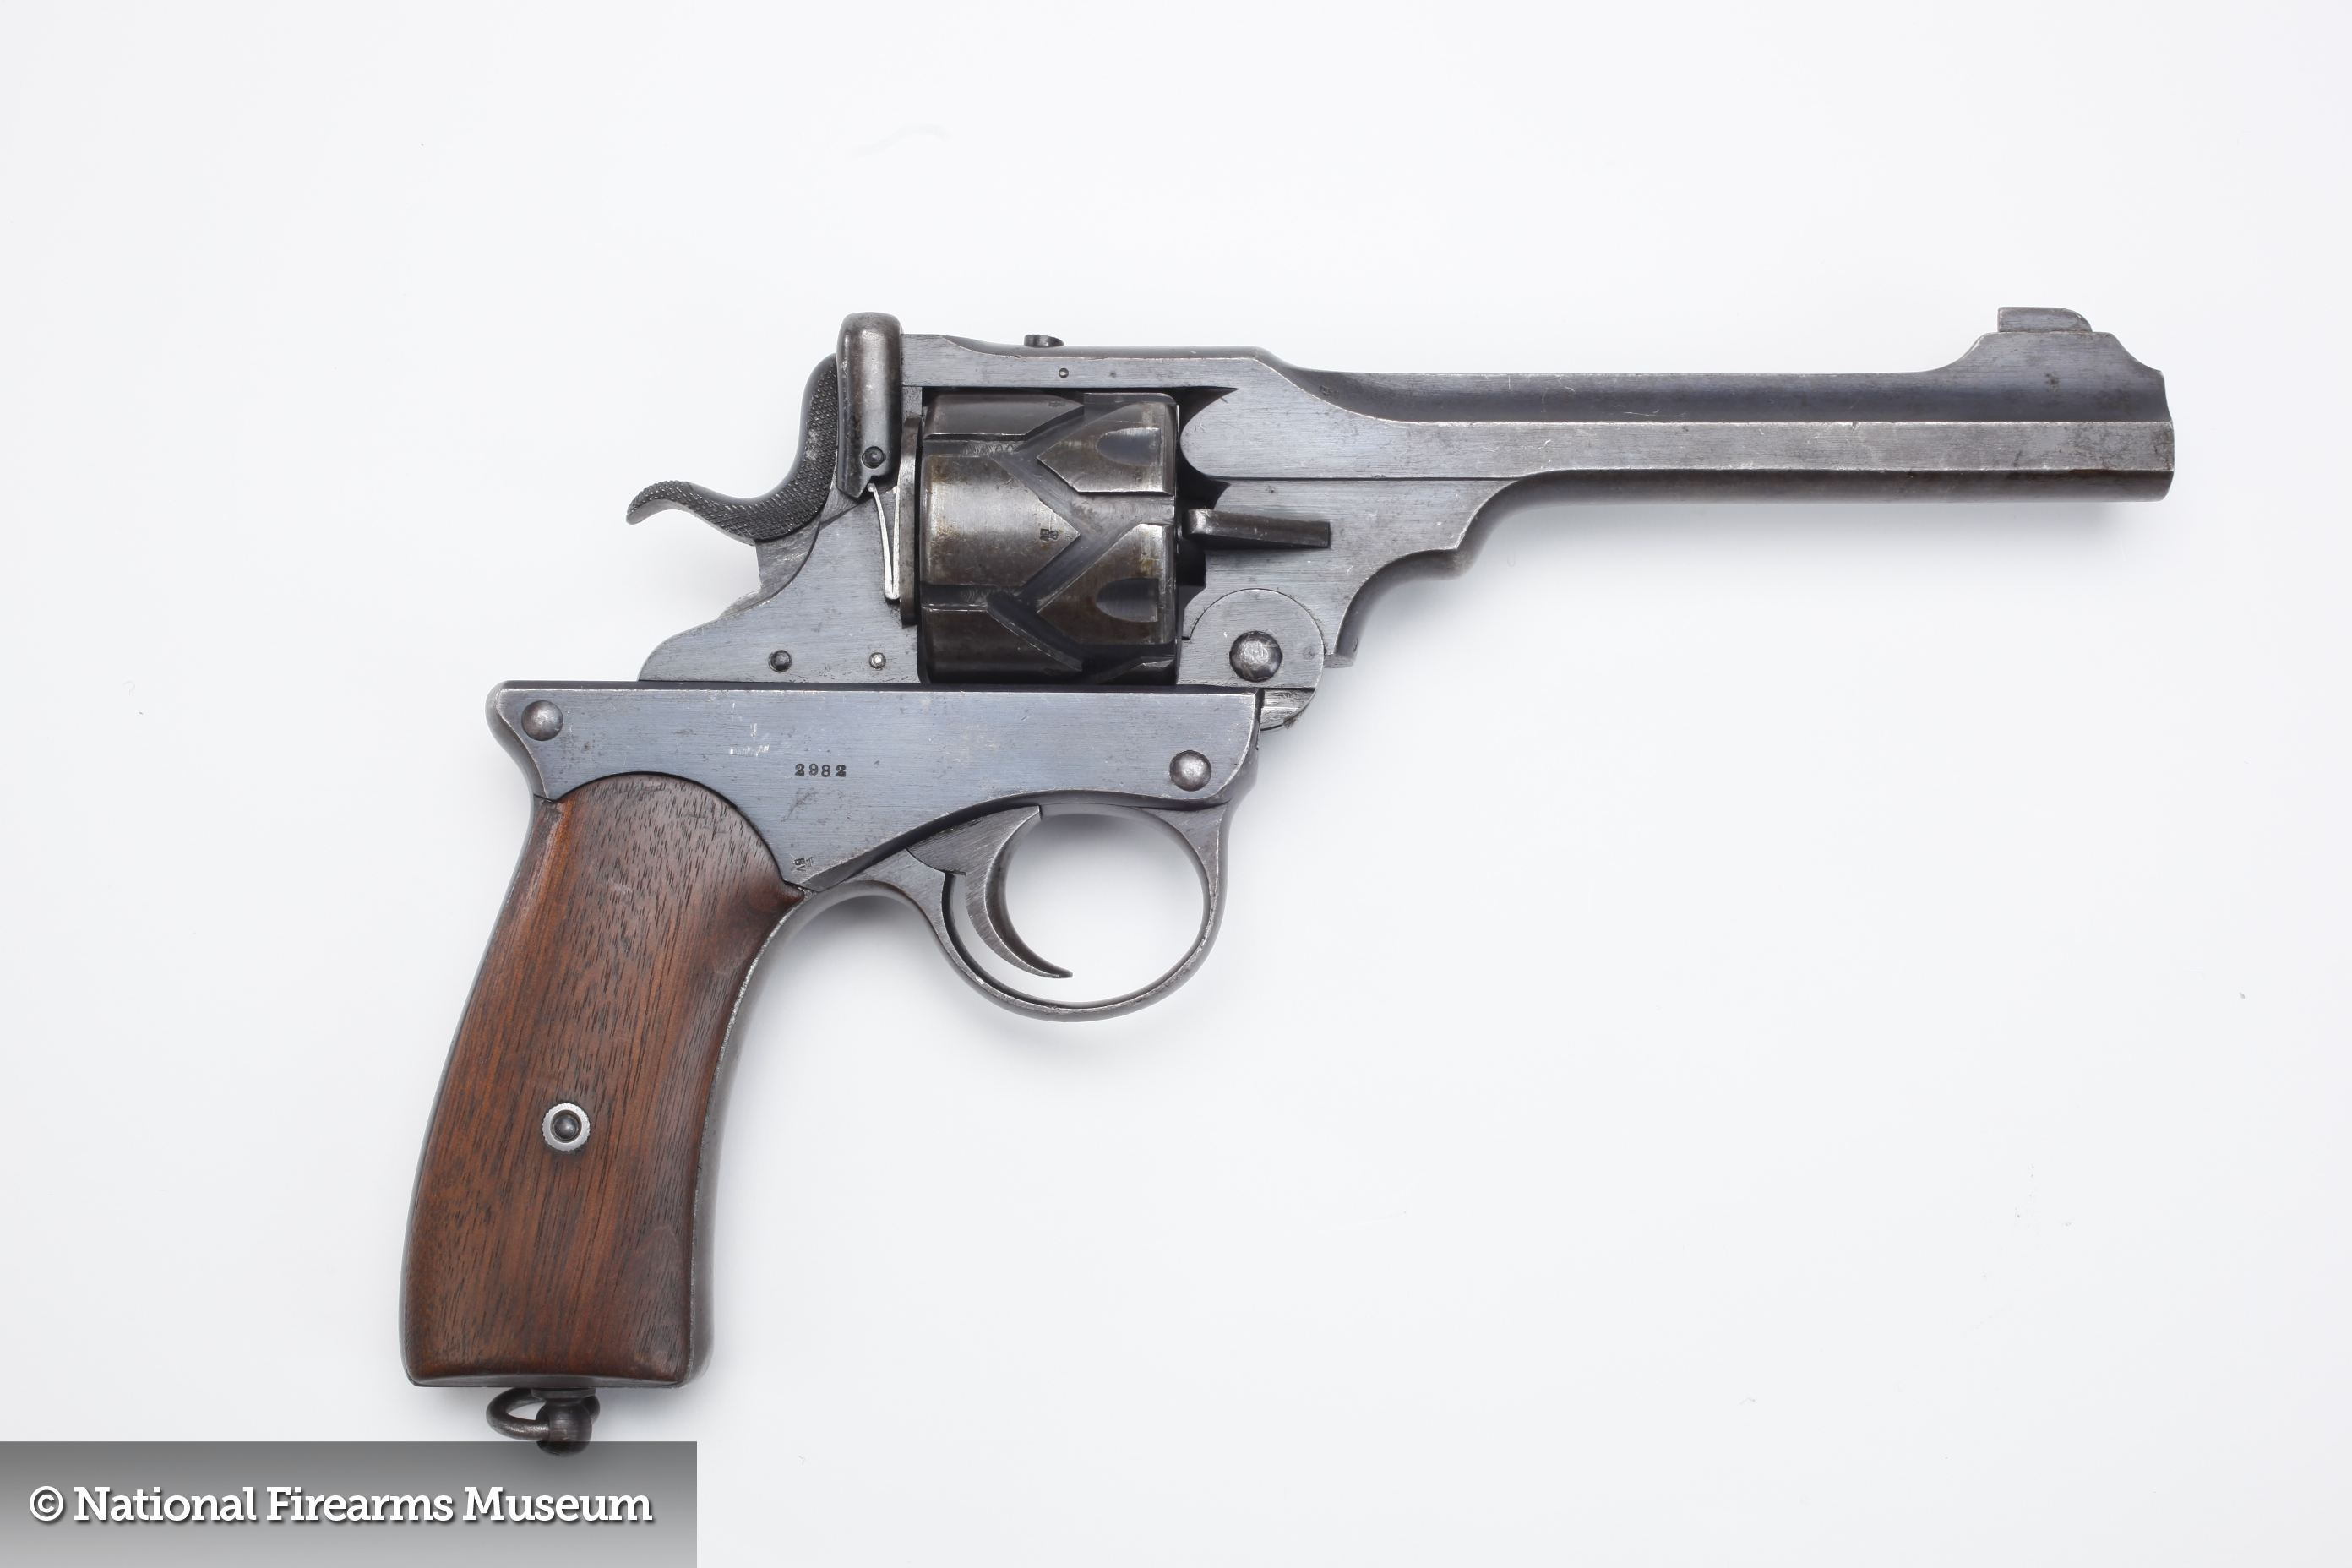 Webley-Fosbery Self-Cocking Automatic Revolver - Integrated Close